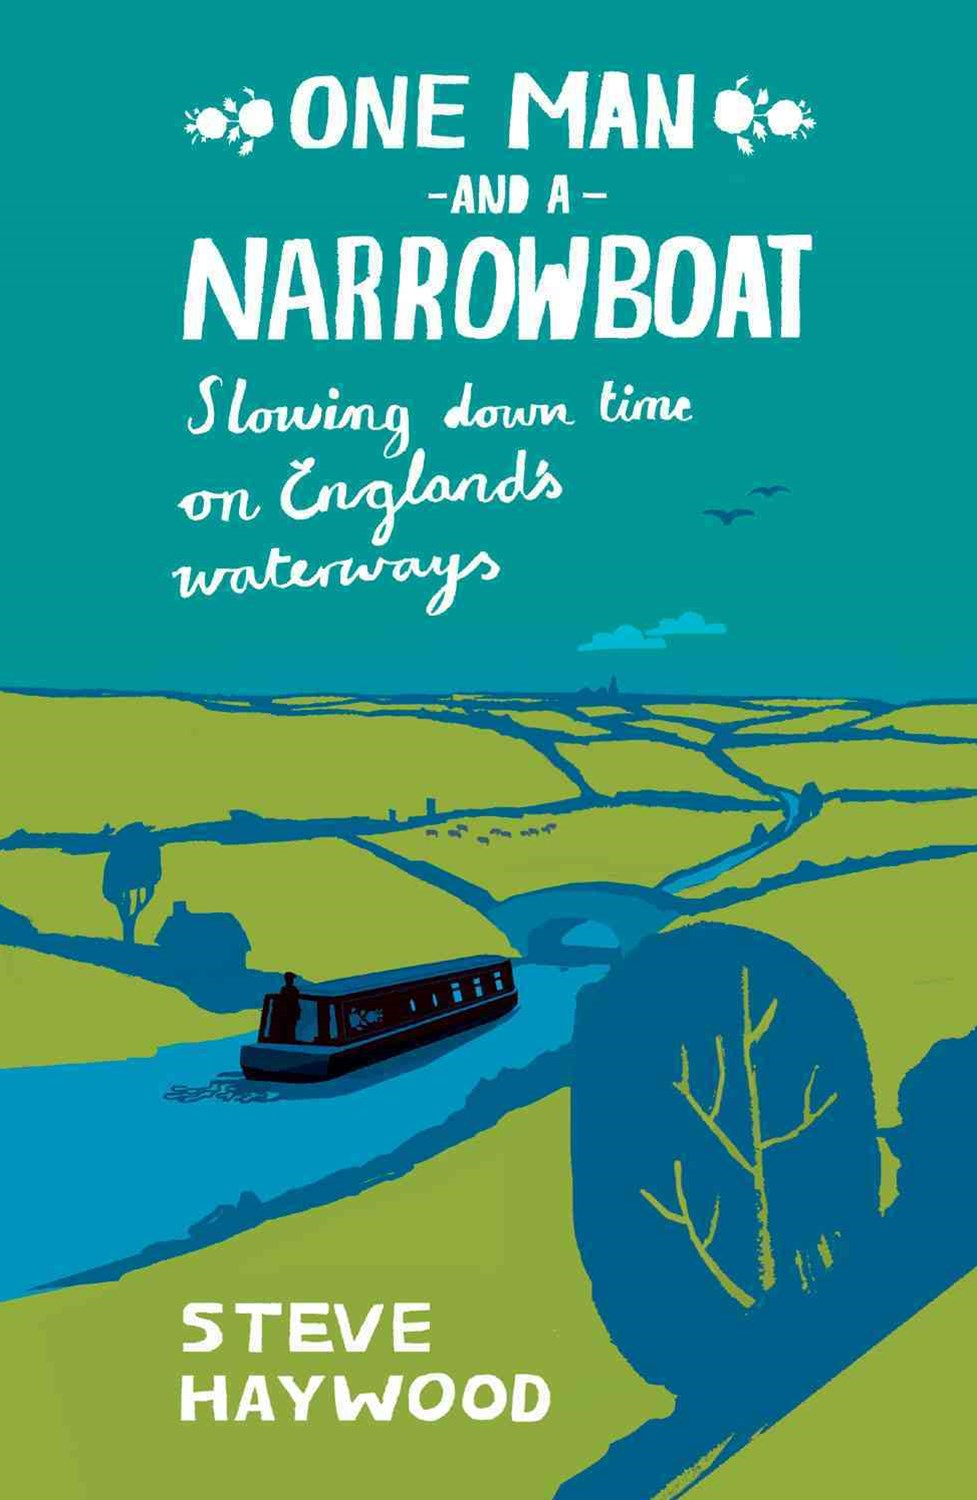 One Man and a Narrow Boat: Slowing Down Time on England's Waterways